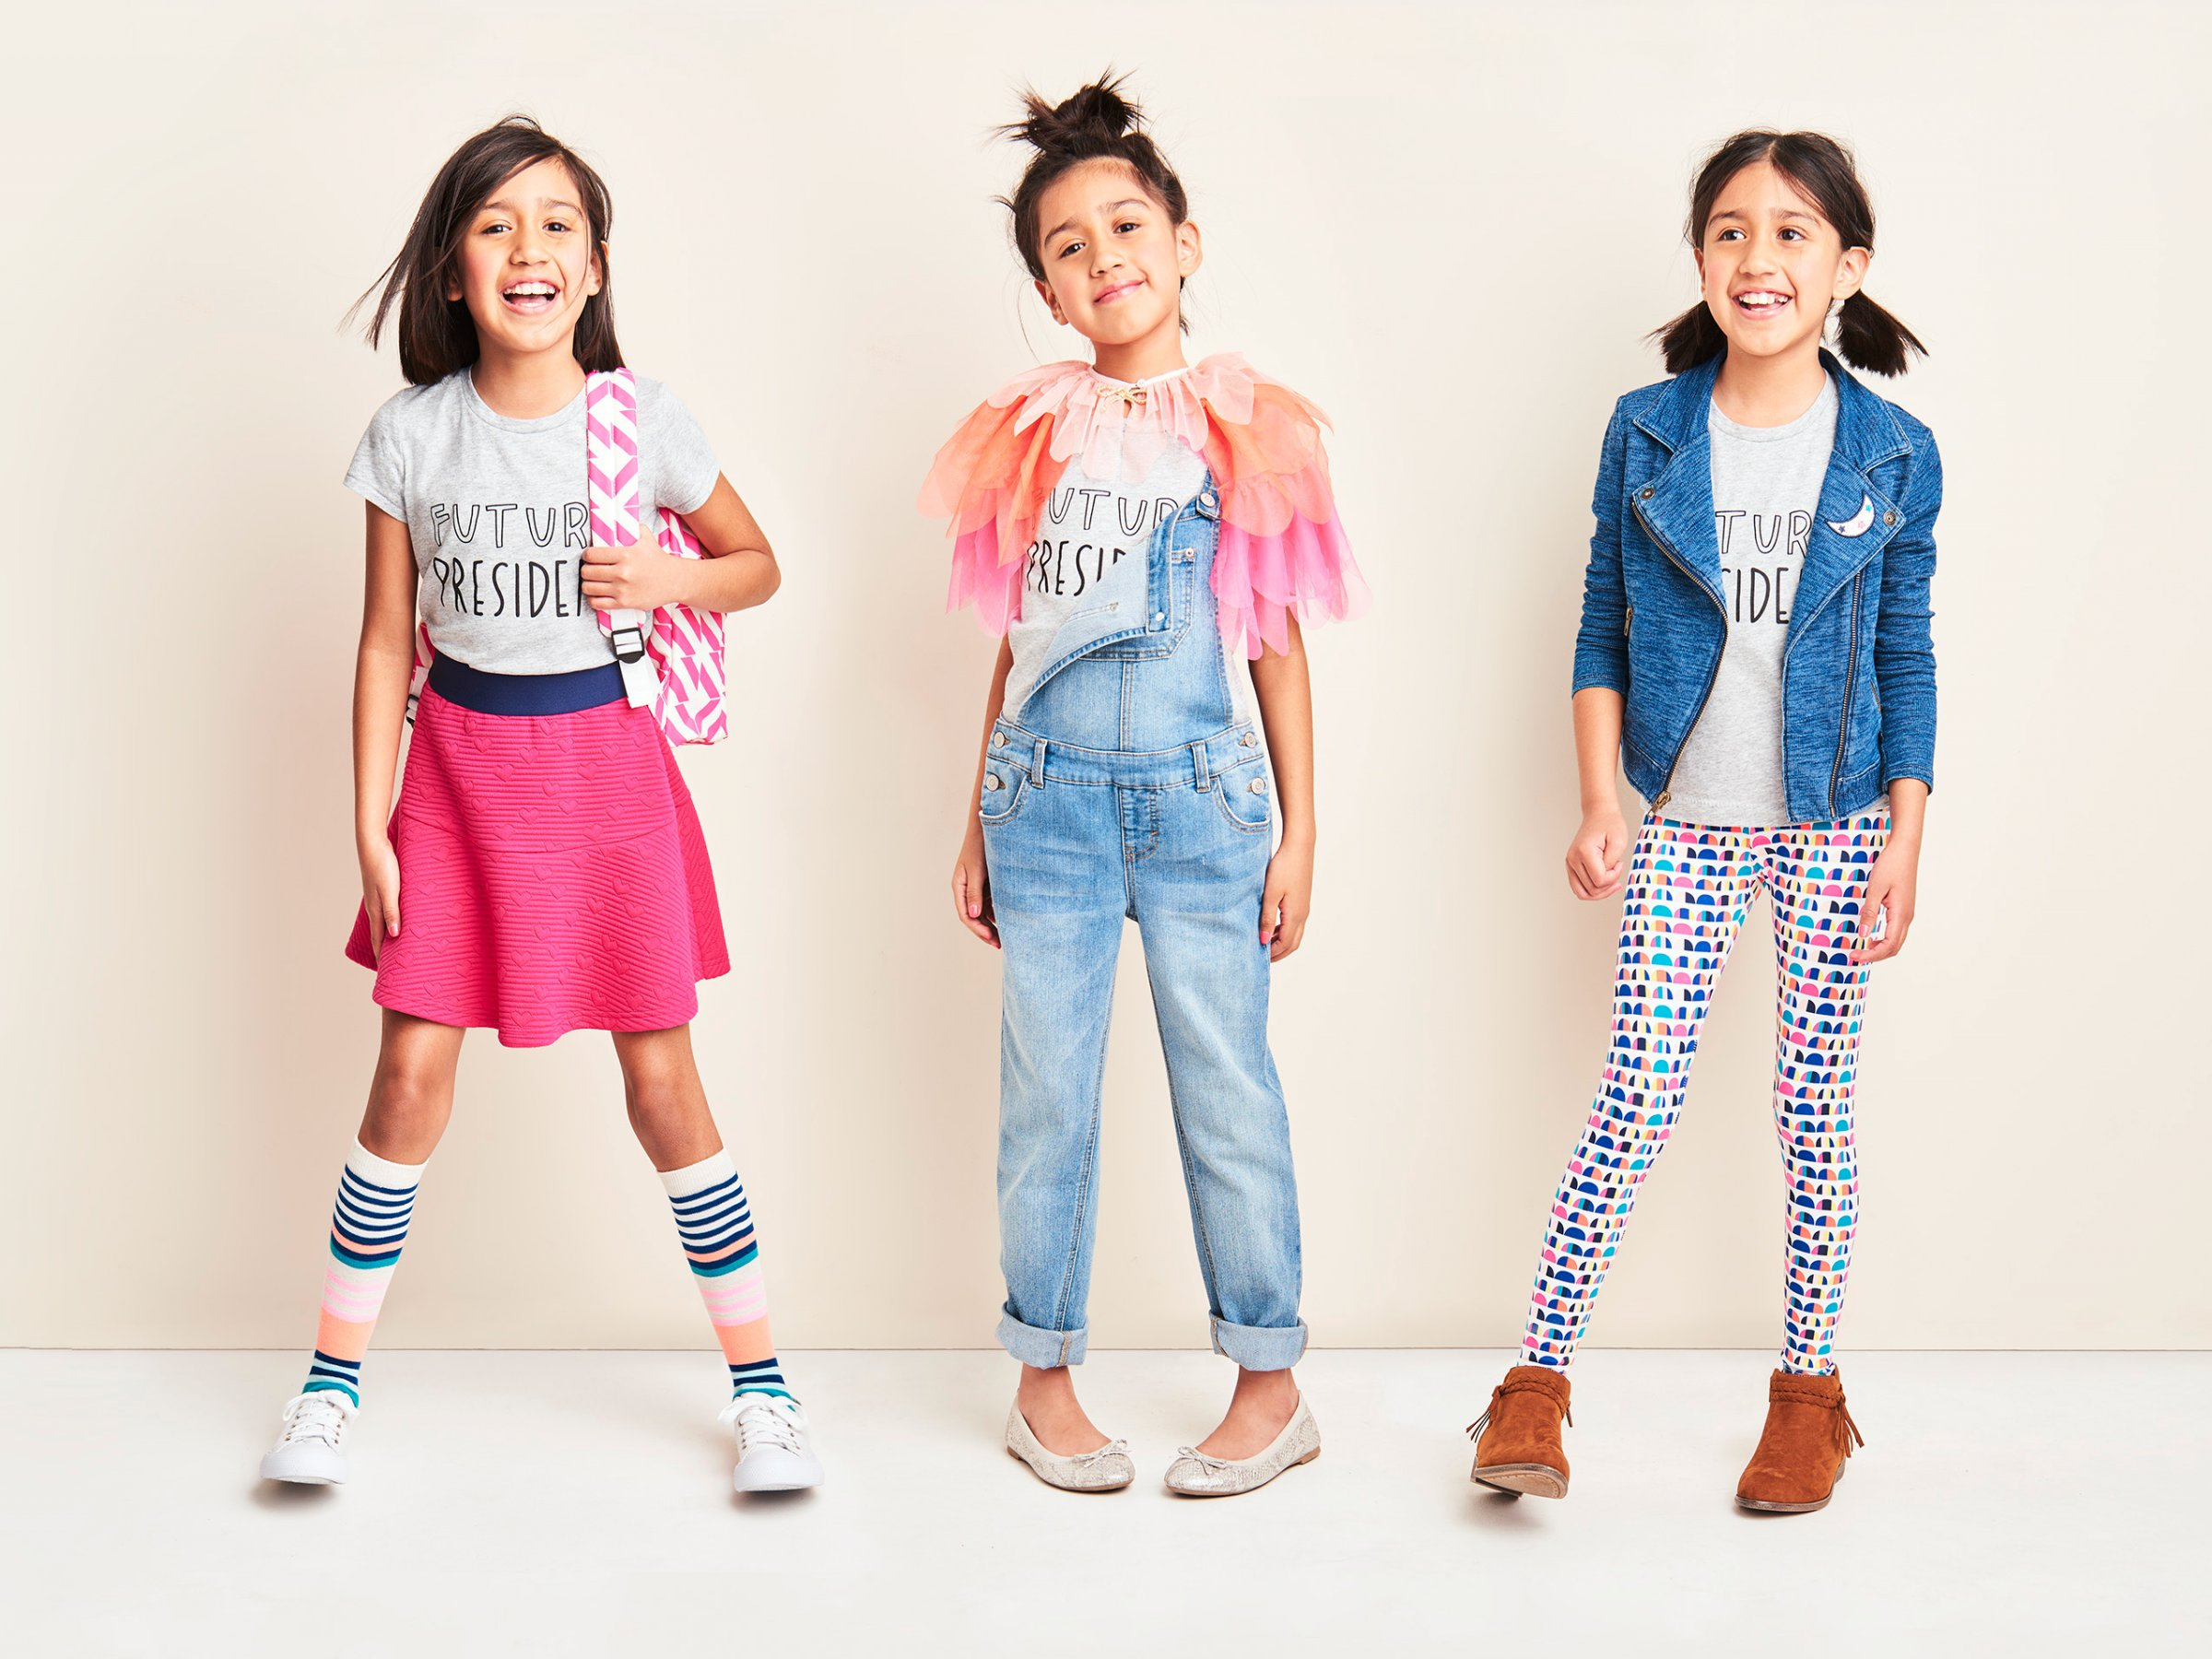 We also carry a full line of fashionable kids accessories to compliment our online kids clothing. Whatever you're looking for in kid's clothes online, Little Trendsetter will definitely have a style that will satisfy your sense of dress completely.